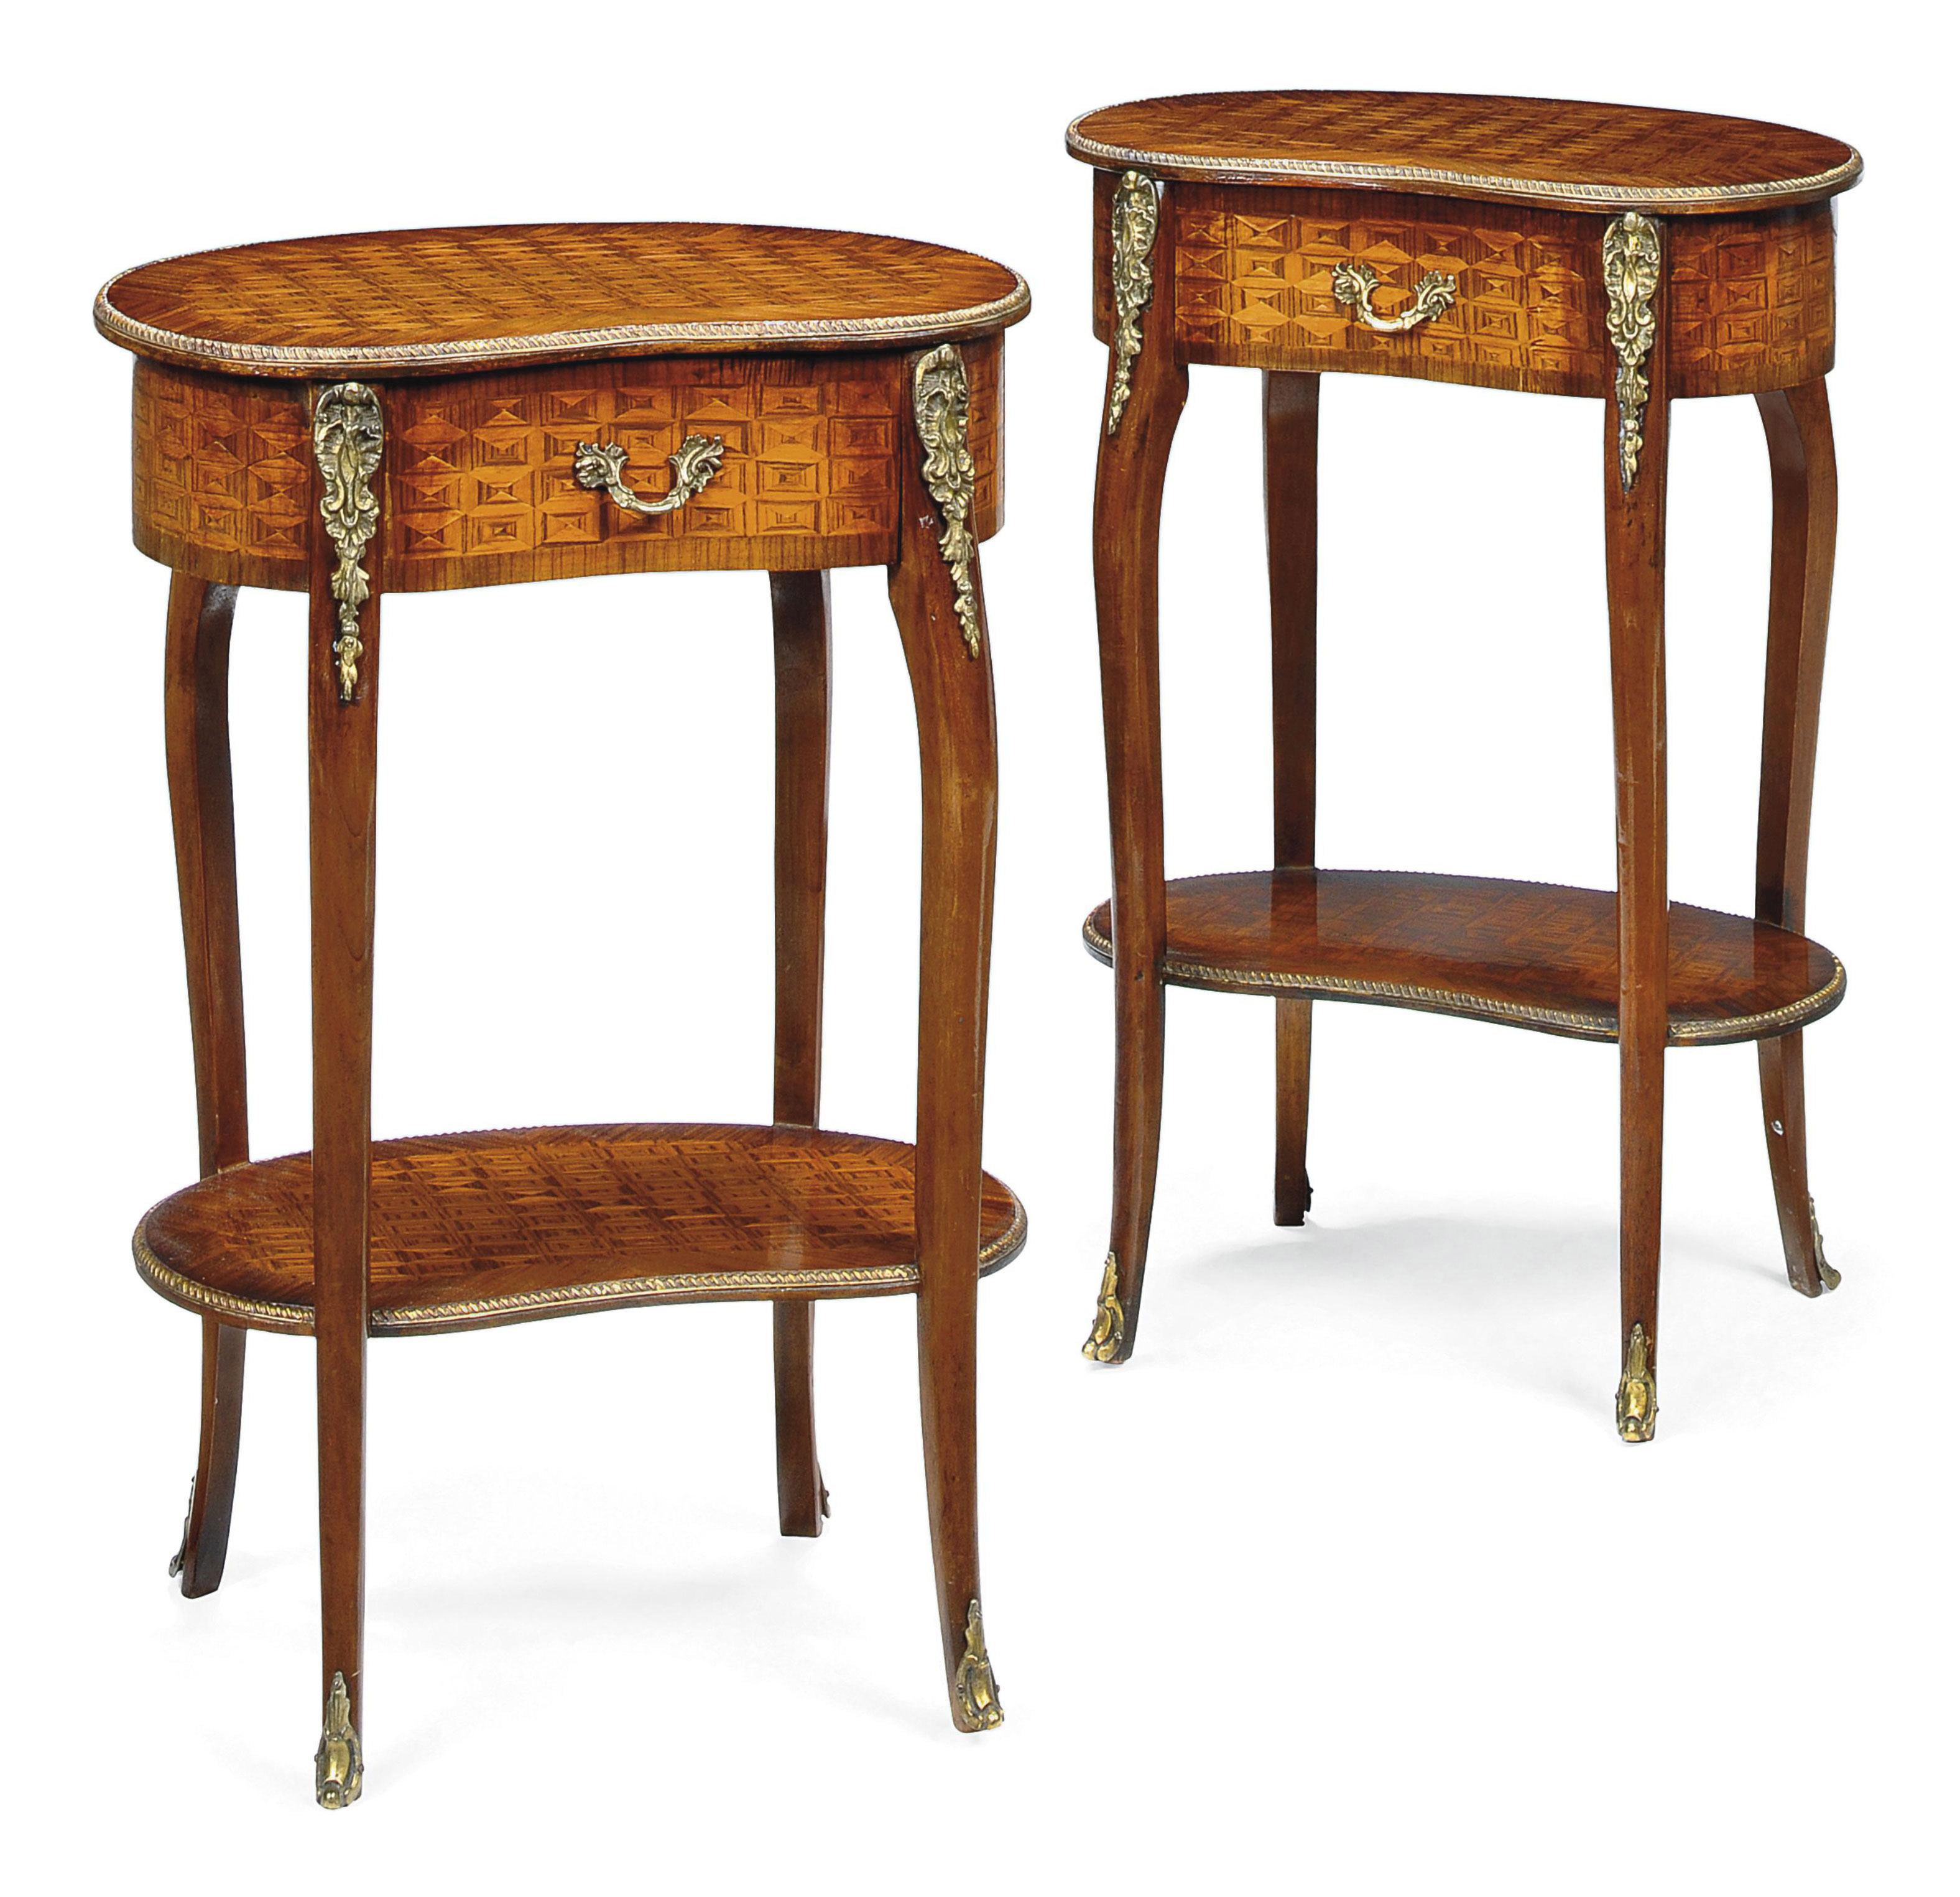 A PAIR OF FRENCH KINGWOOD AND PARQUETRY OCCASIONAL TABLES